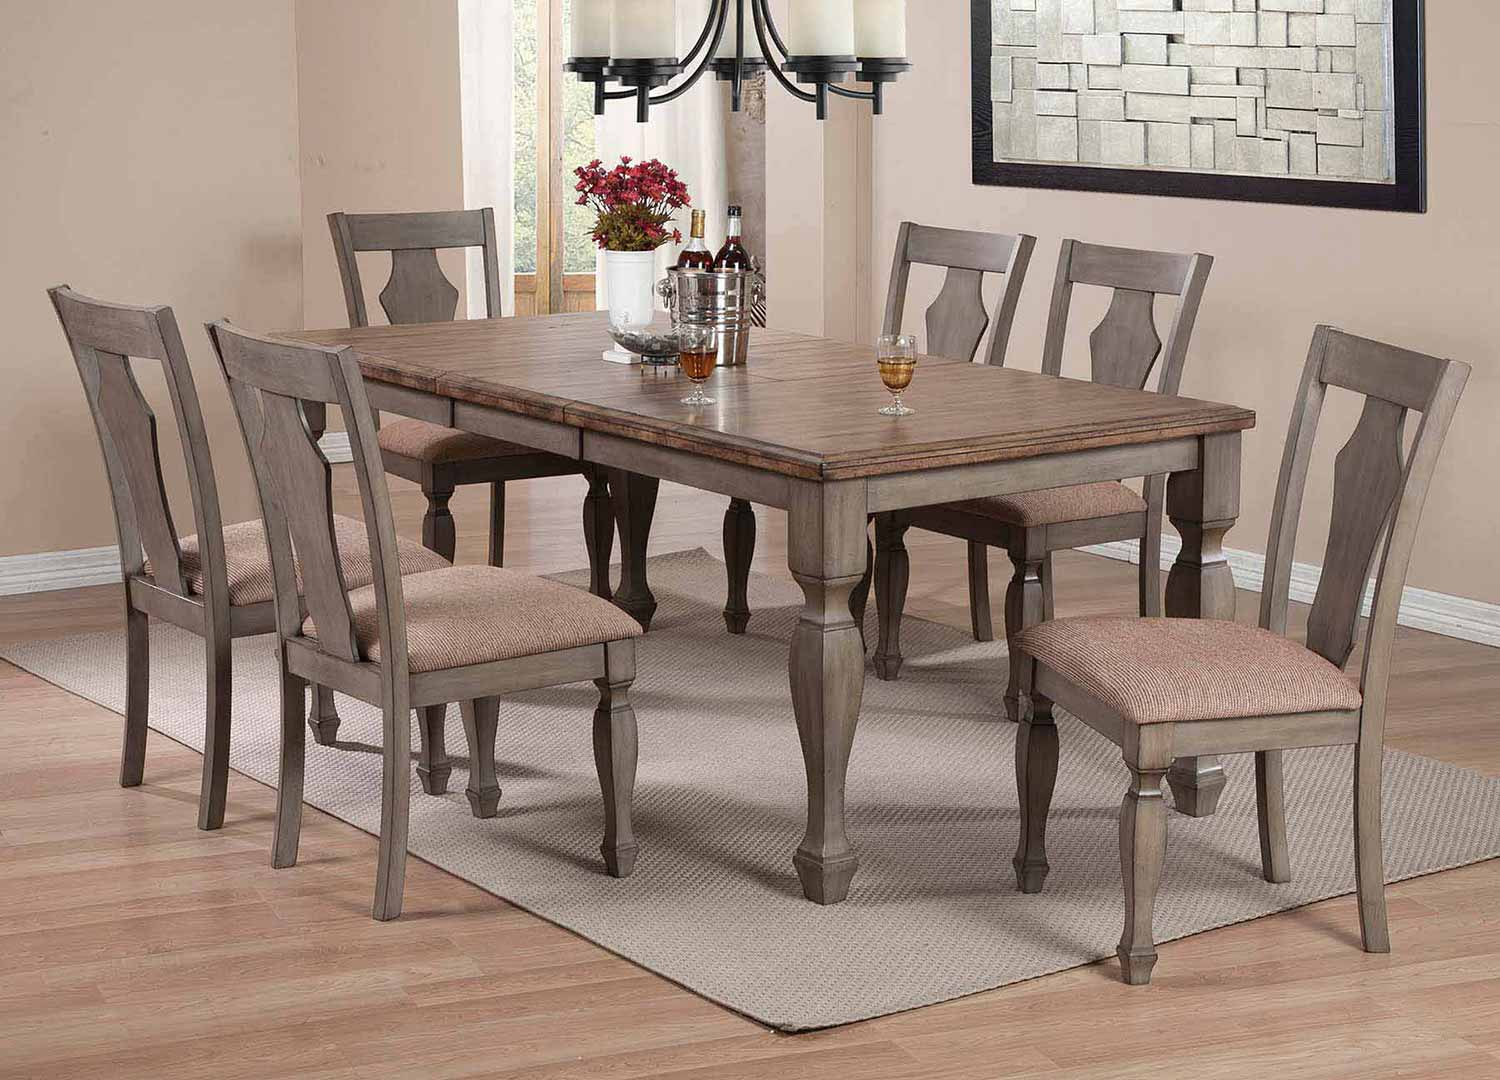 Coaster Riverbend Dining Set - Wheat/Antique Grey